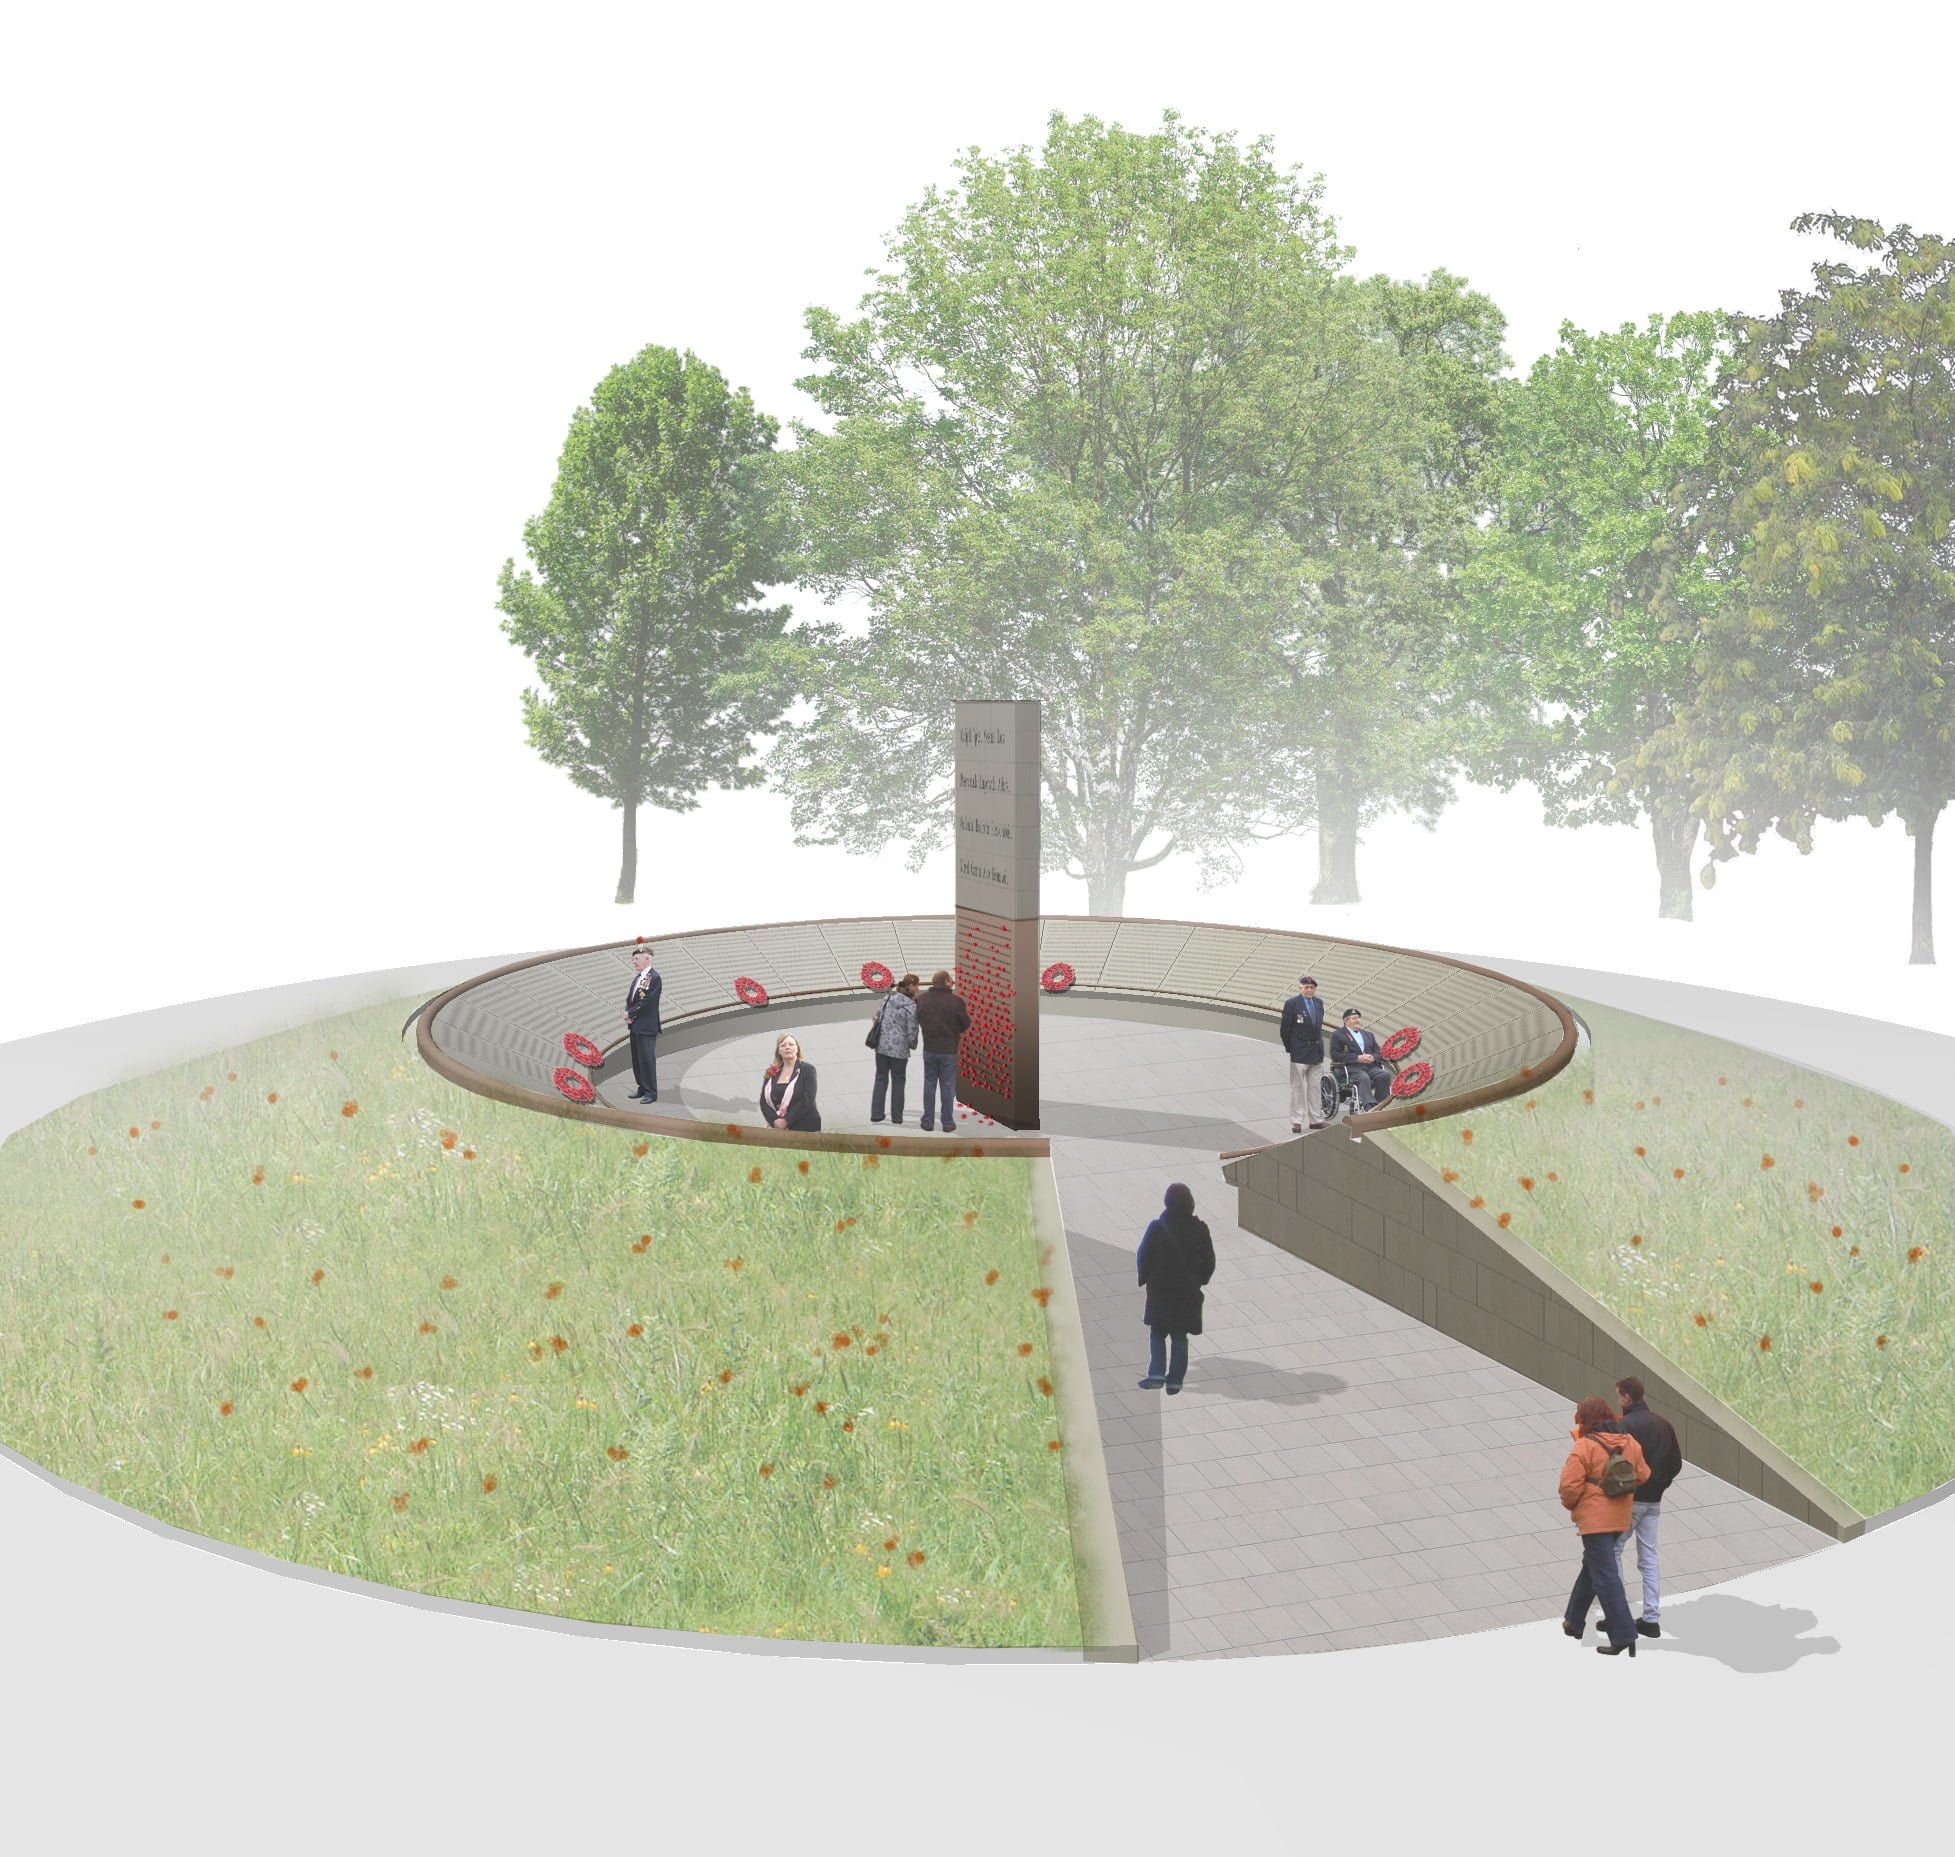 The names of all 13,482 Great War fallen from almost every part of Nottinghamshire will appear on the memorial, which will be built at the Victoria Embankment in Nottingham and is due to open this summer.